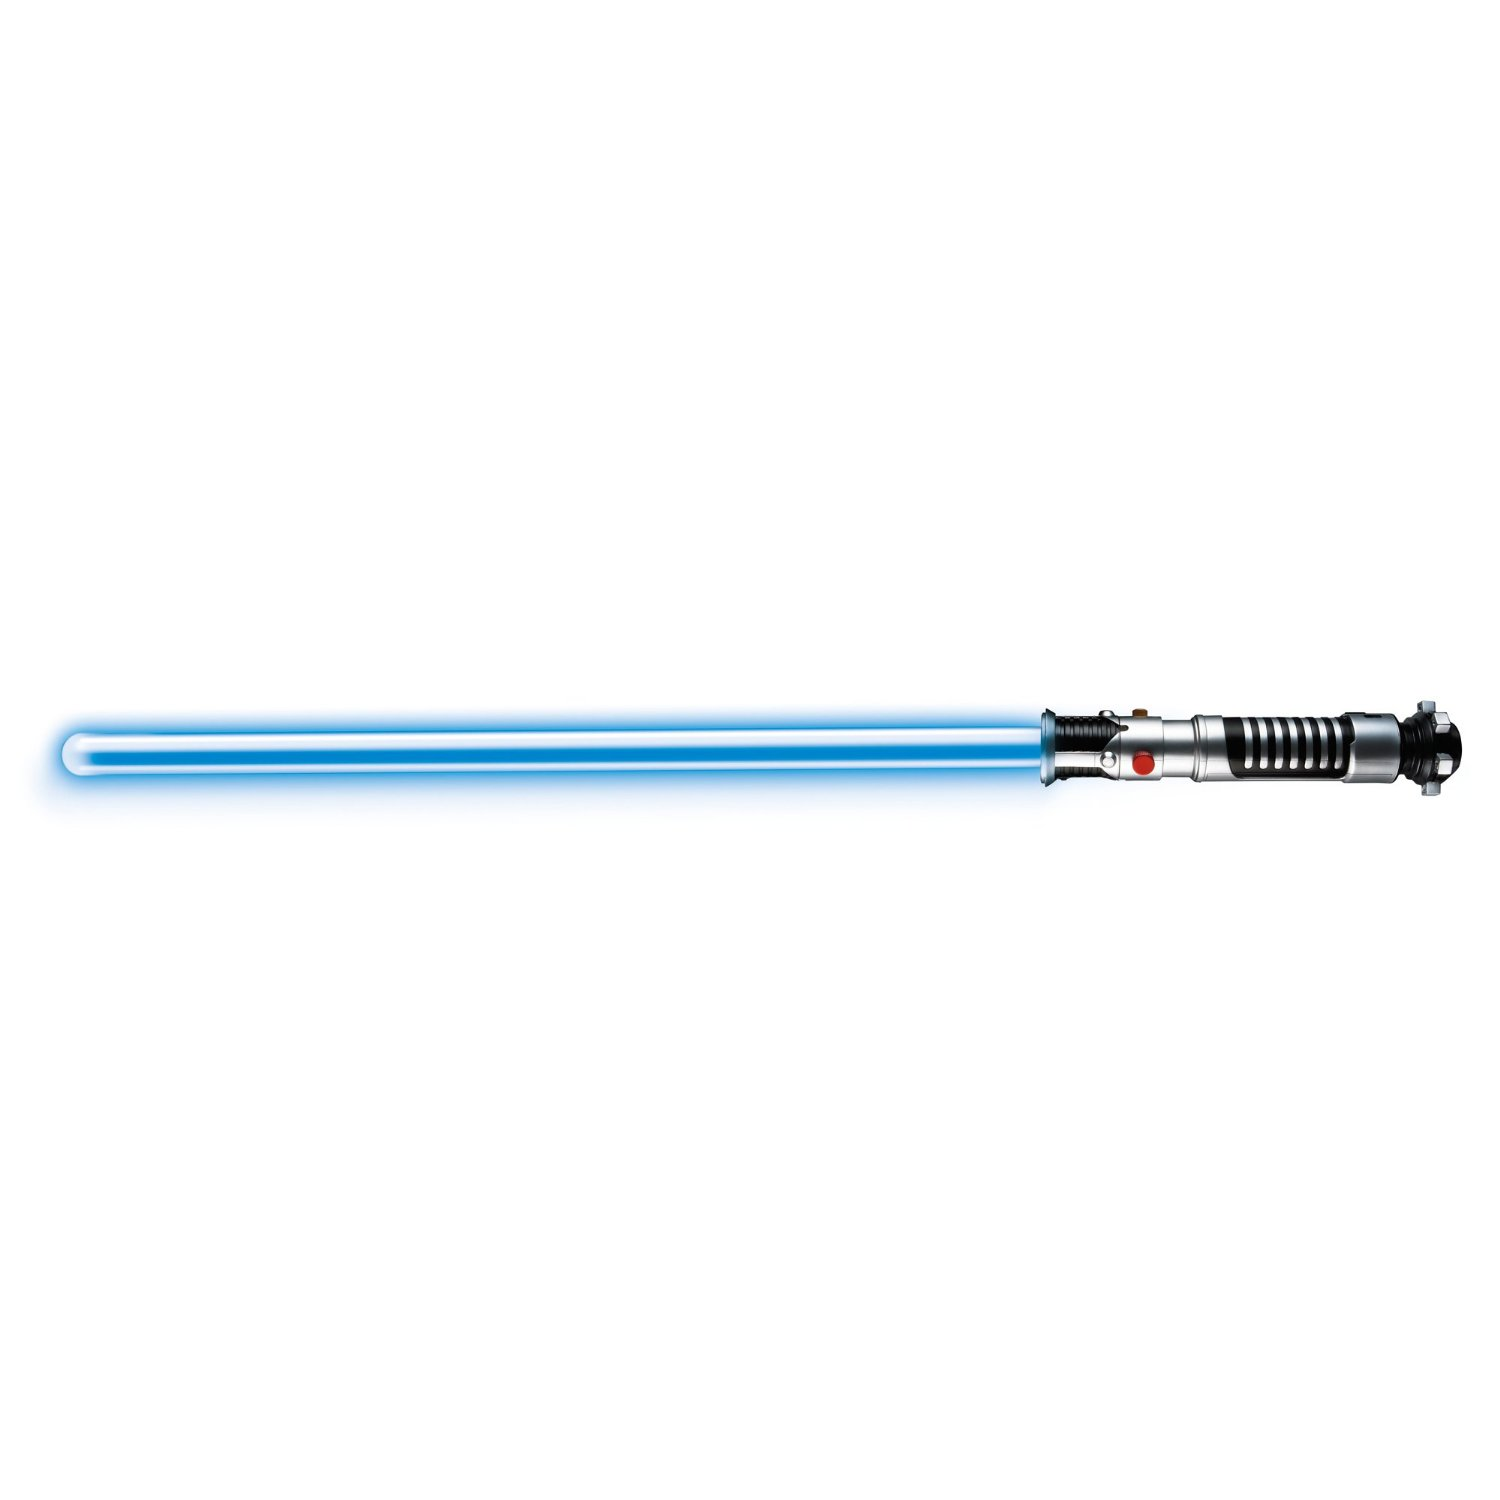 Free Lightsaber Cliparts, Download Free Clip Art, Free Clip.